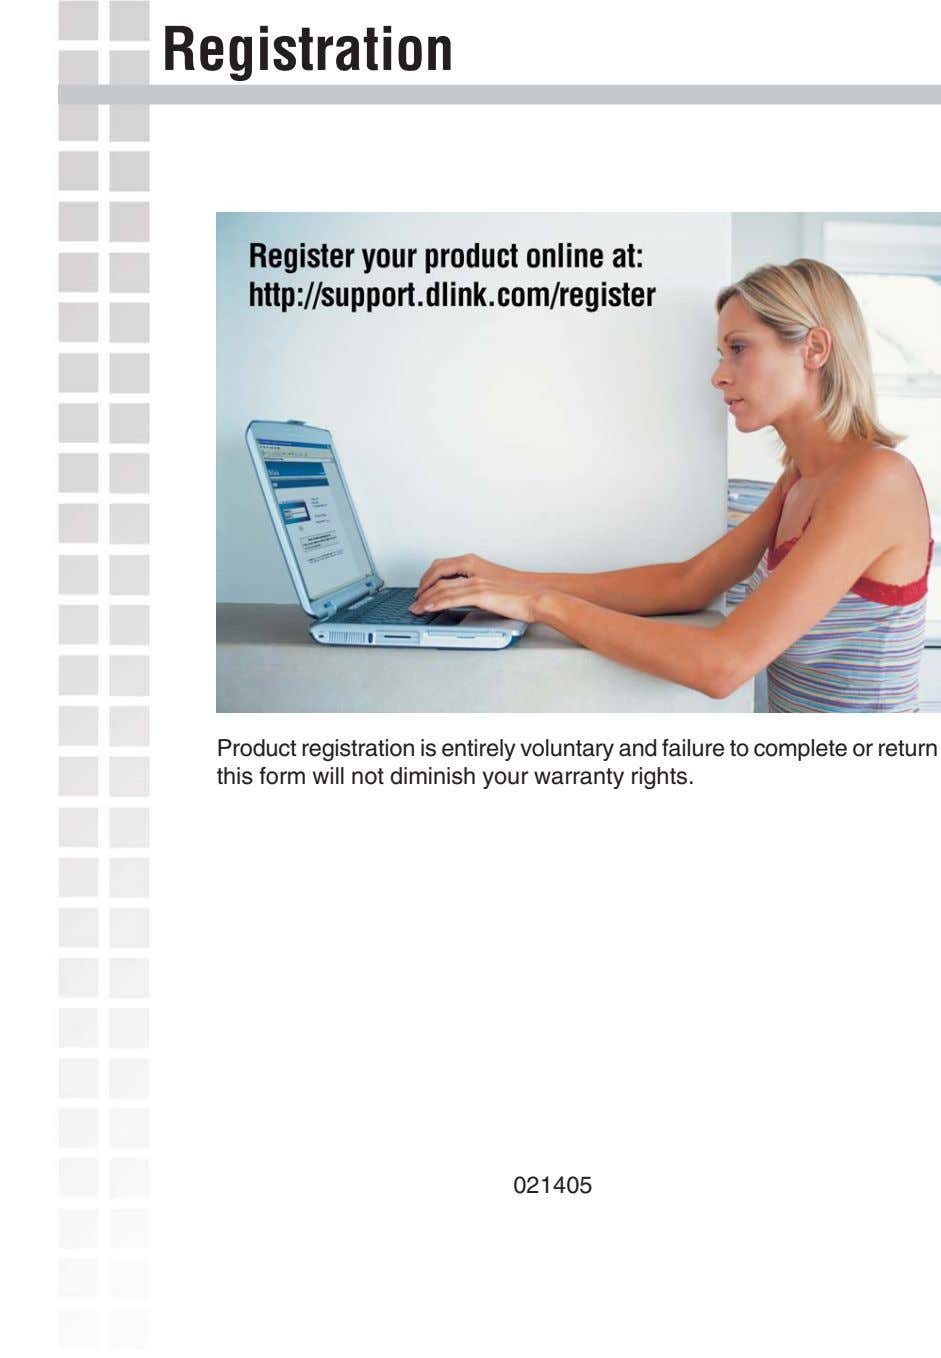 Registration Product registration is entirely voluntary and failure to complete or return this form will